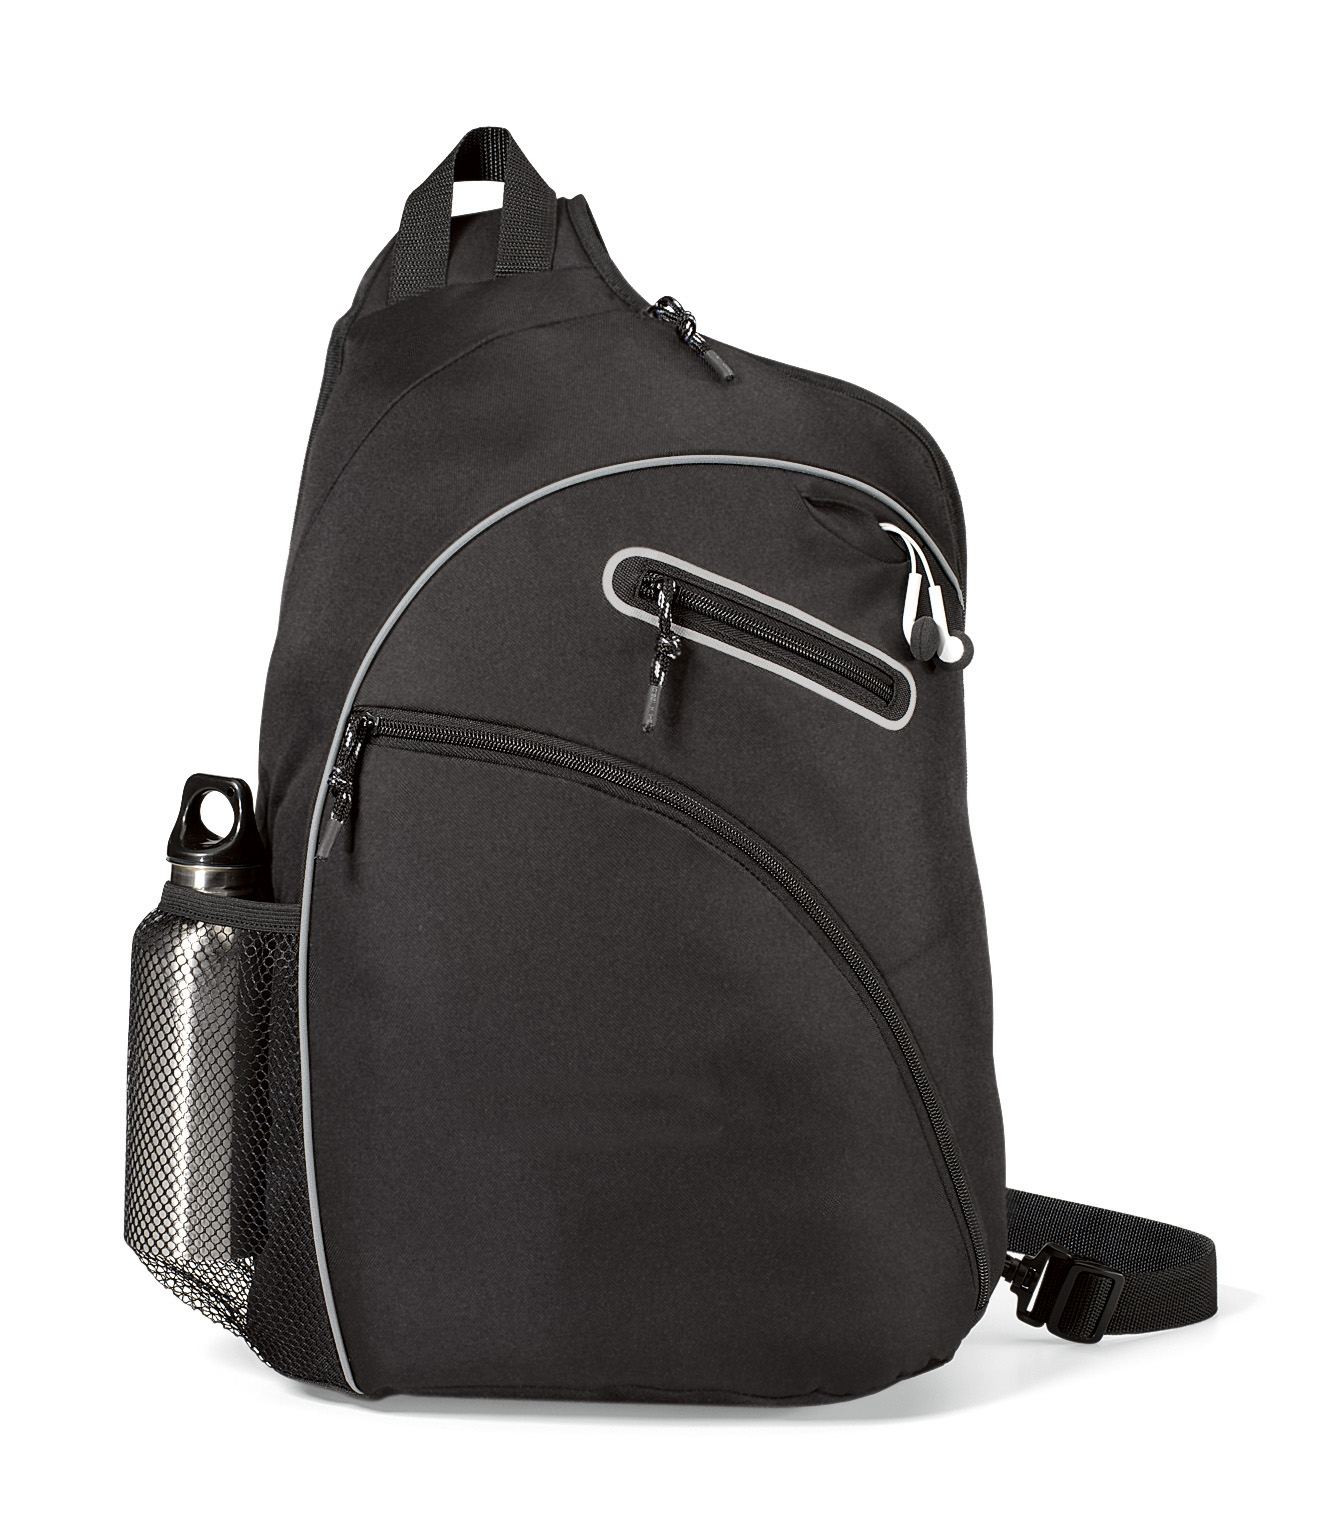 Gemline 5127 - Evolution Computer Sling Bag